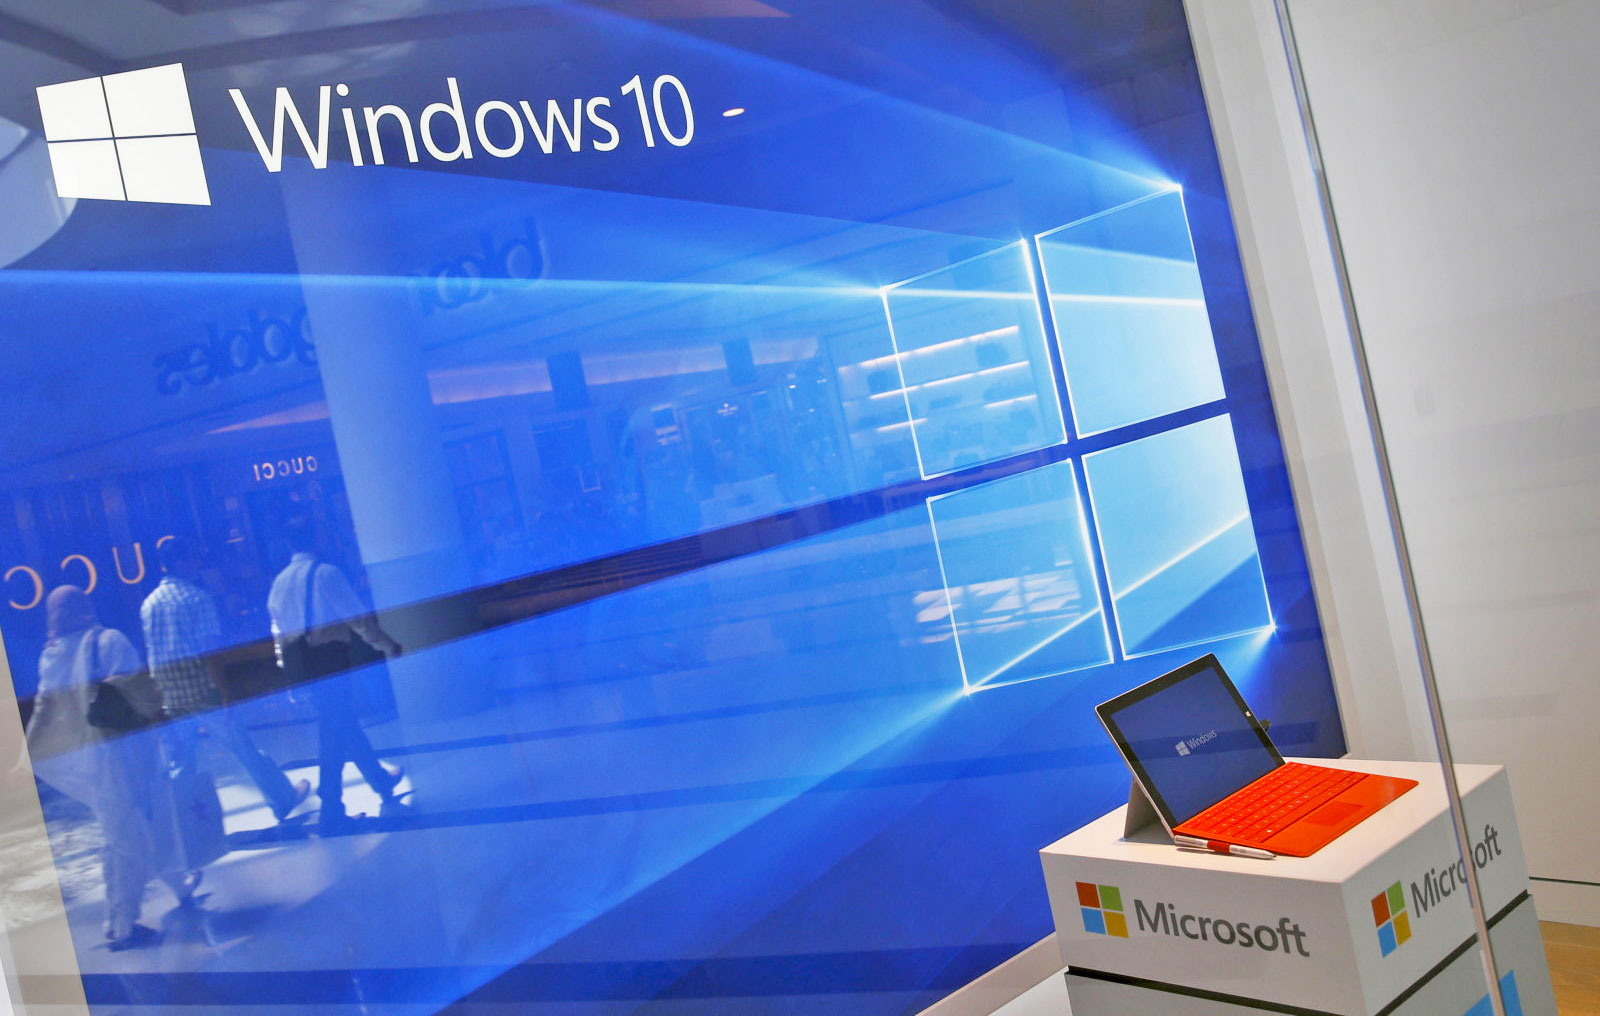 The full extent of Windows 10's data sharing is slightly alarming